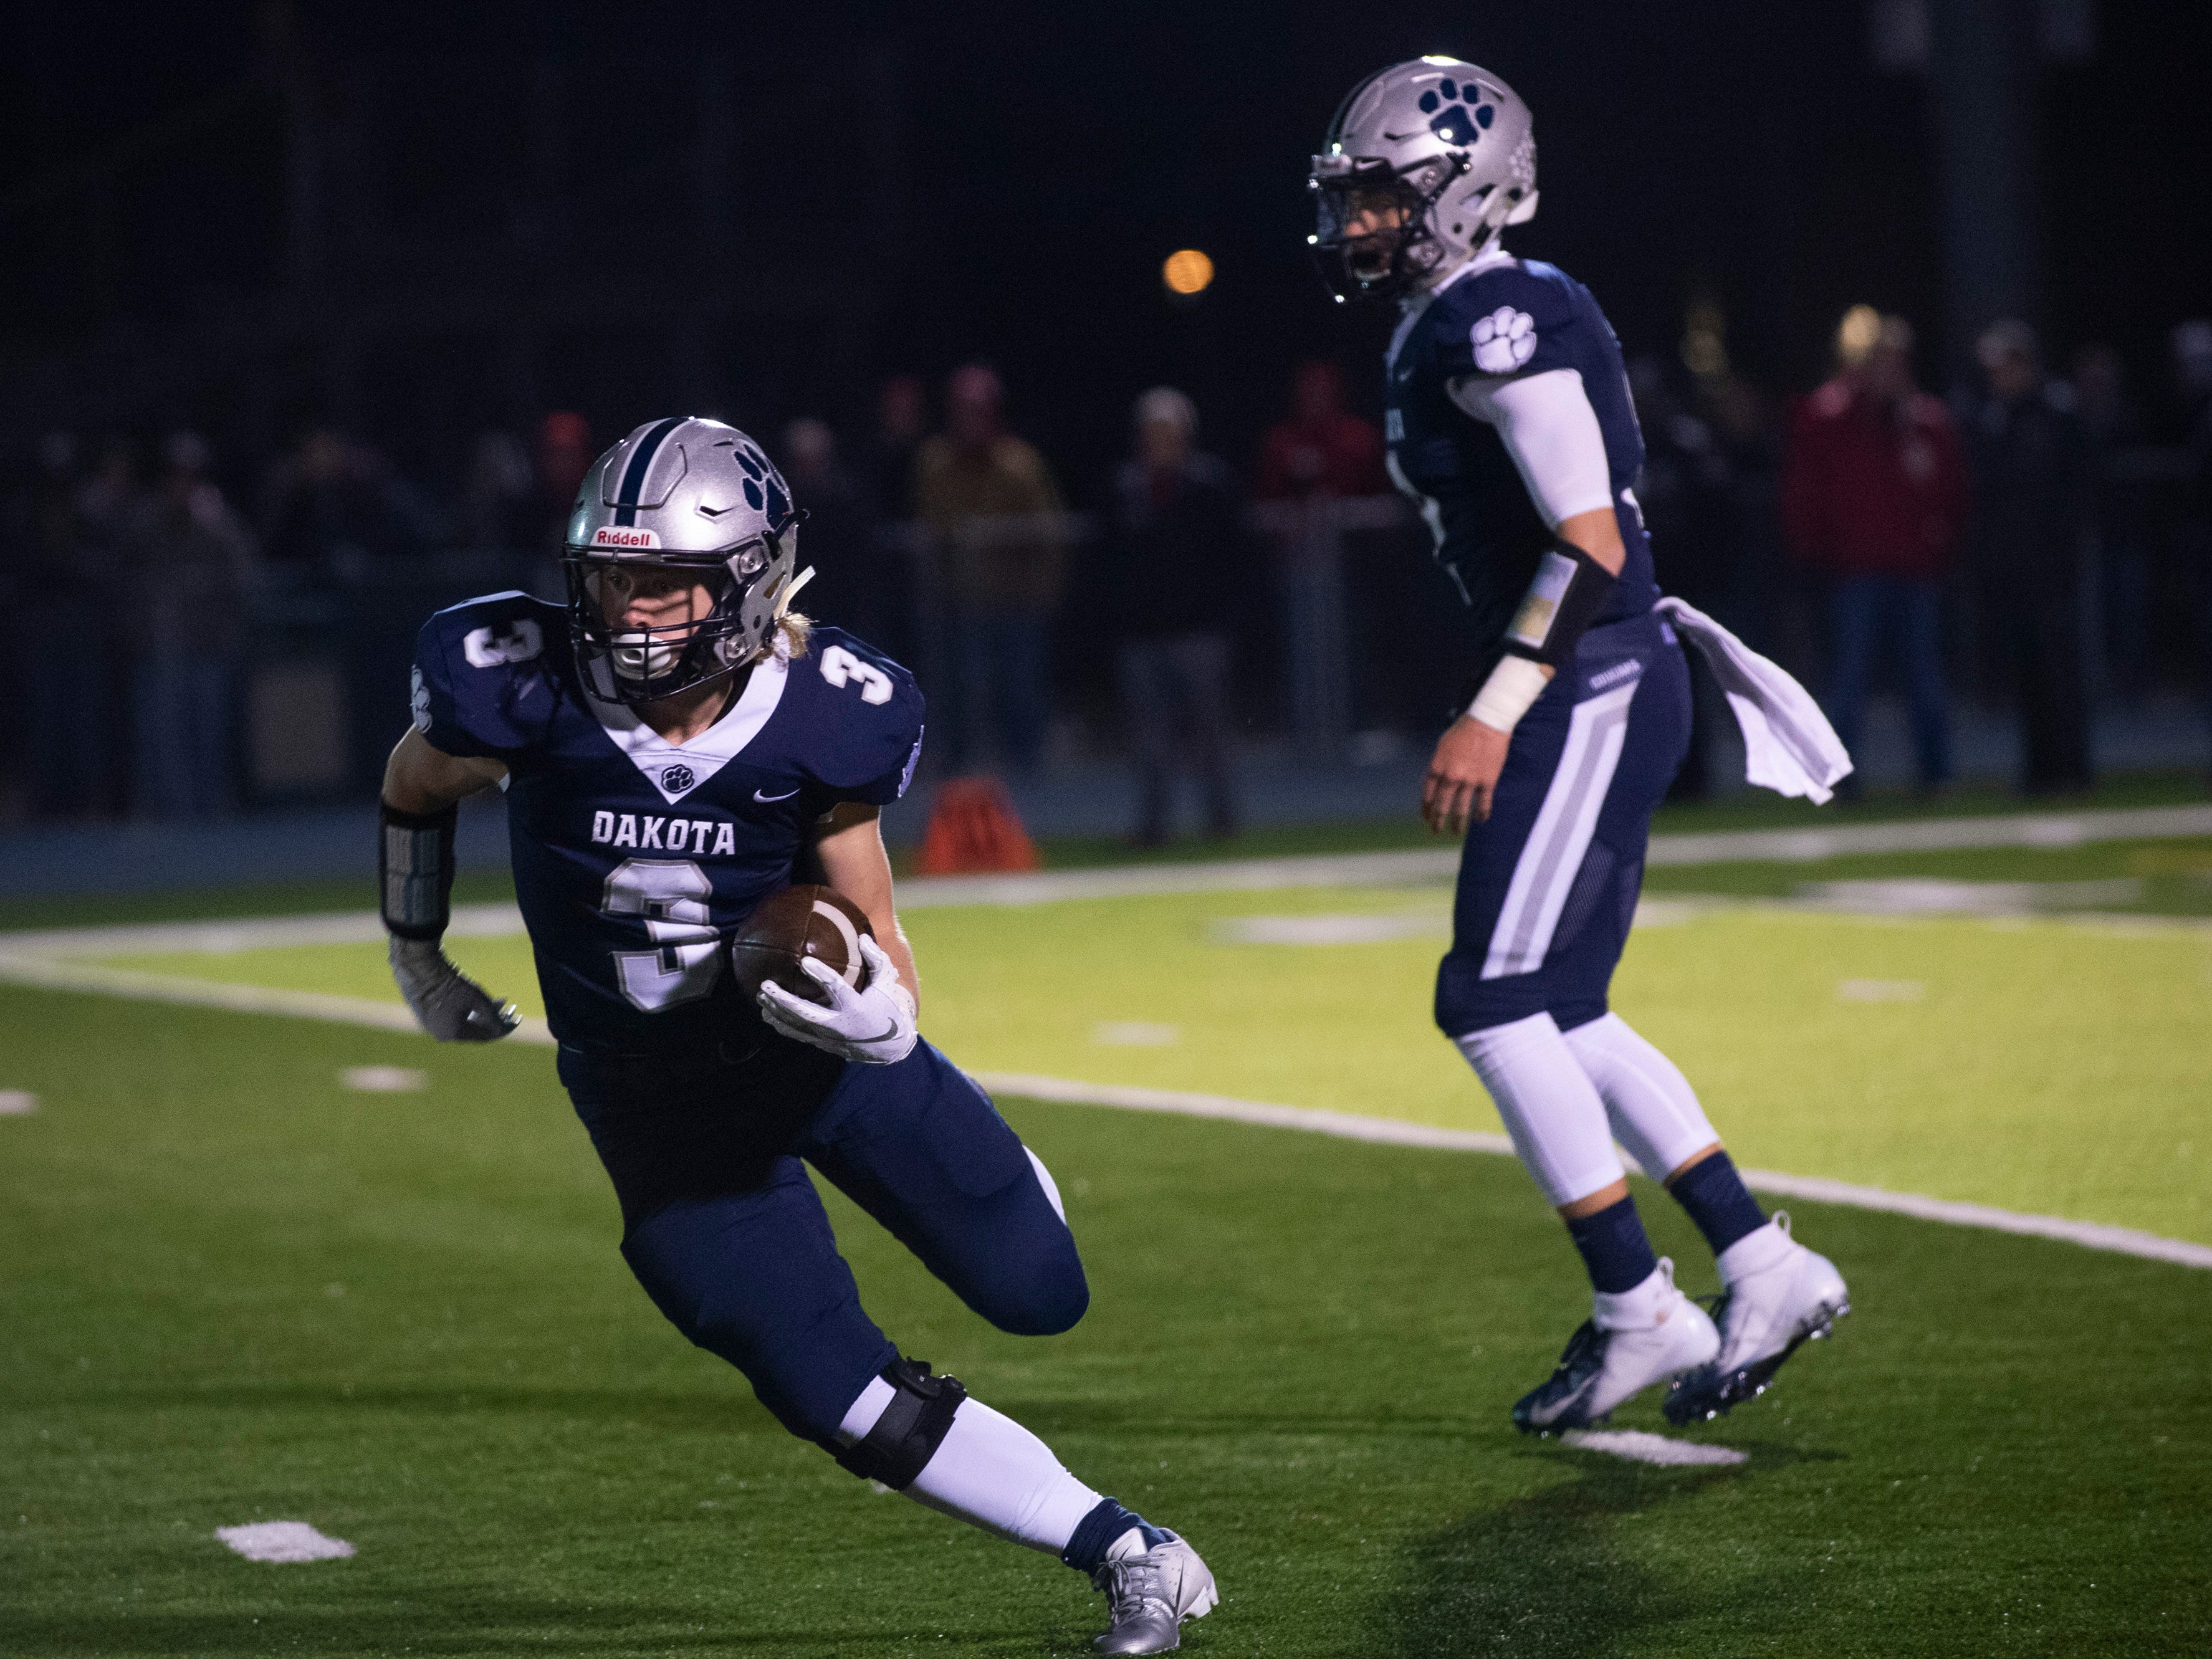 Dakota's Dustin Soloman moves with the ball during the 2nd quarter.